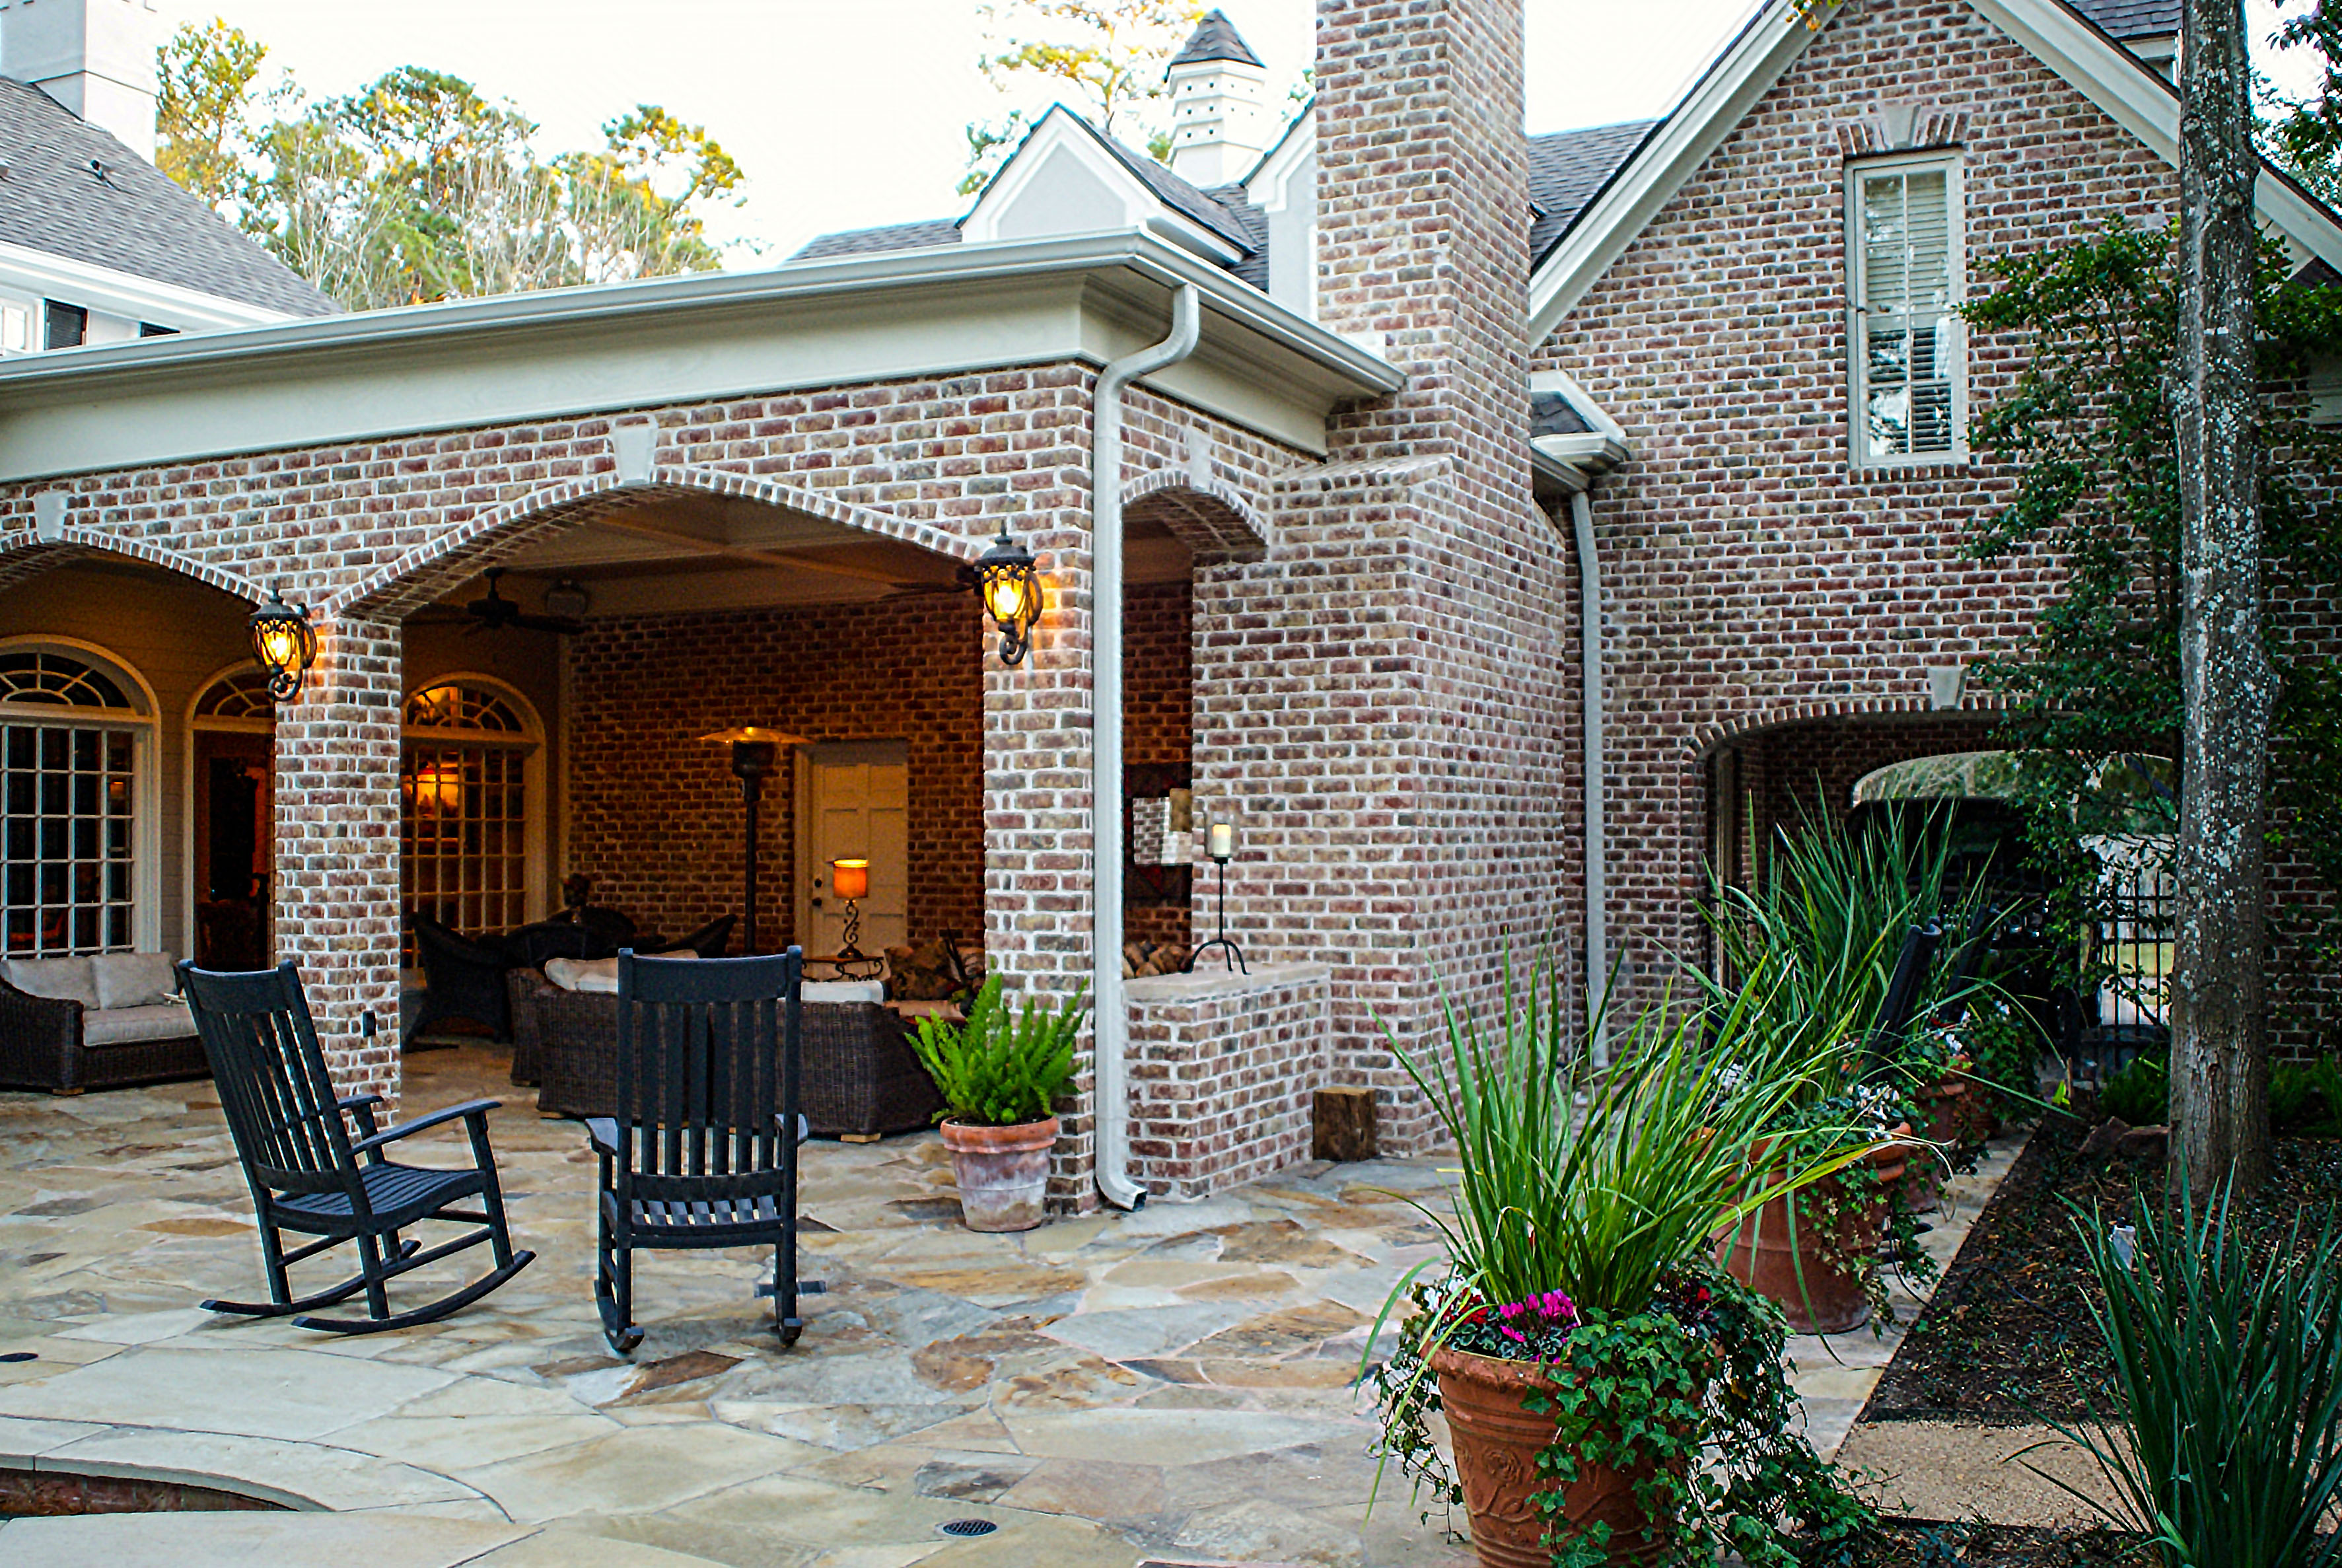 New Outdoor Living Room Solves Drainage Problem - Texas ... on Custom Outdoor Living id=94941